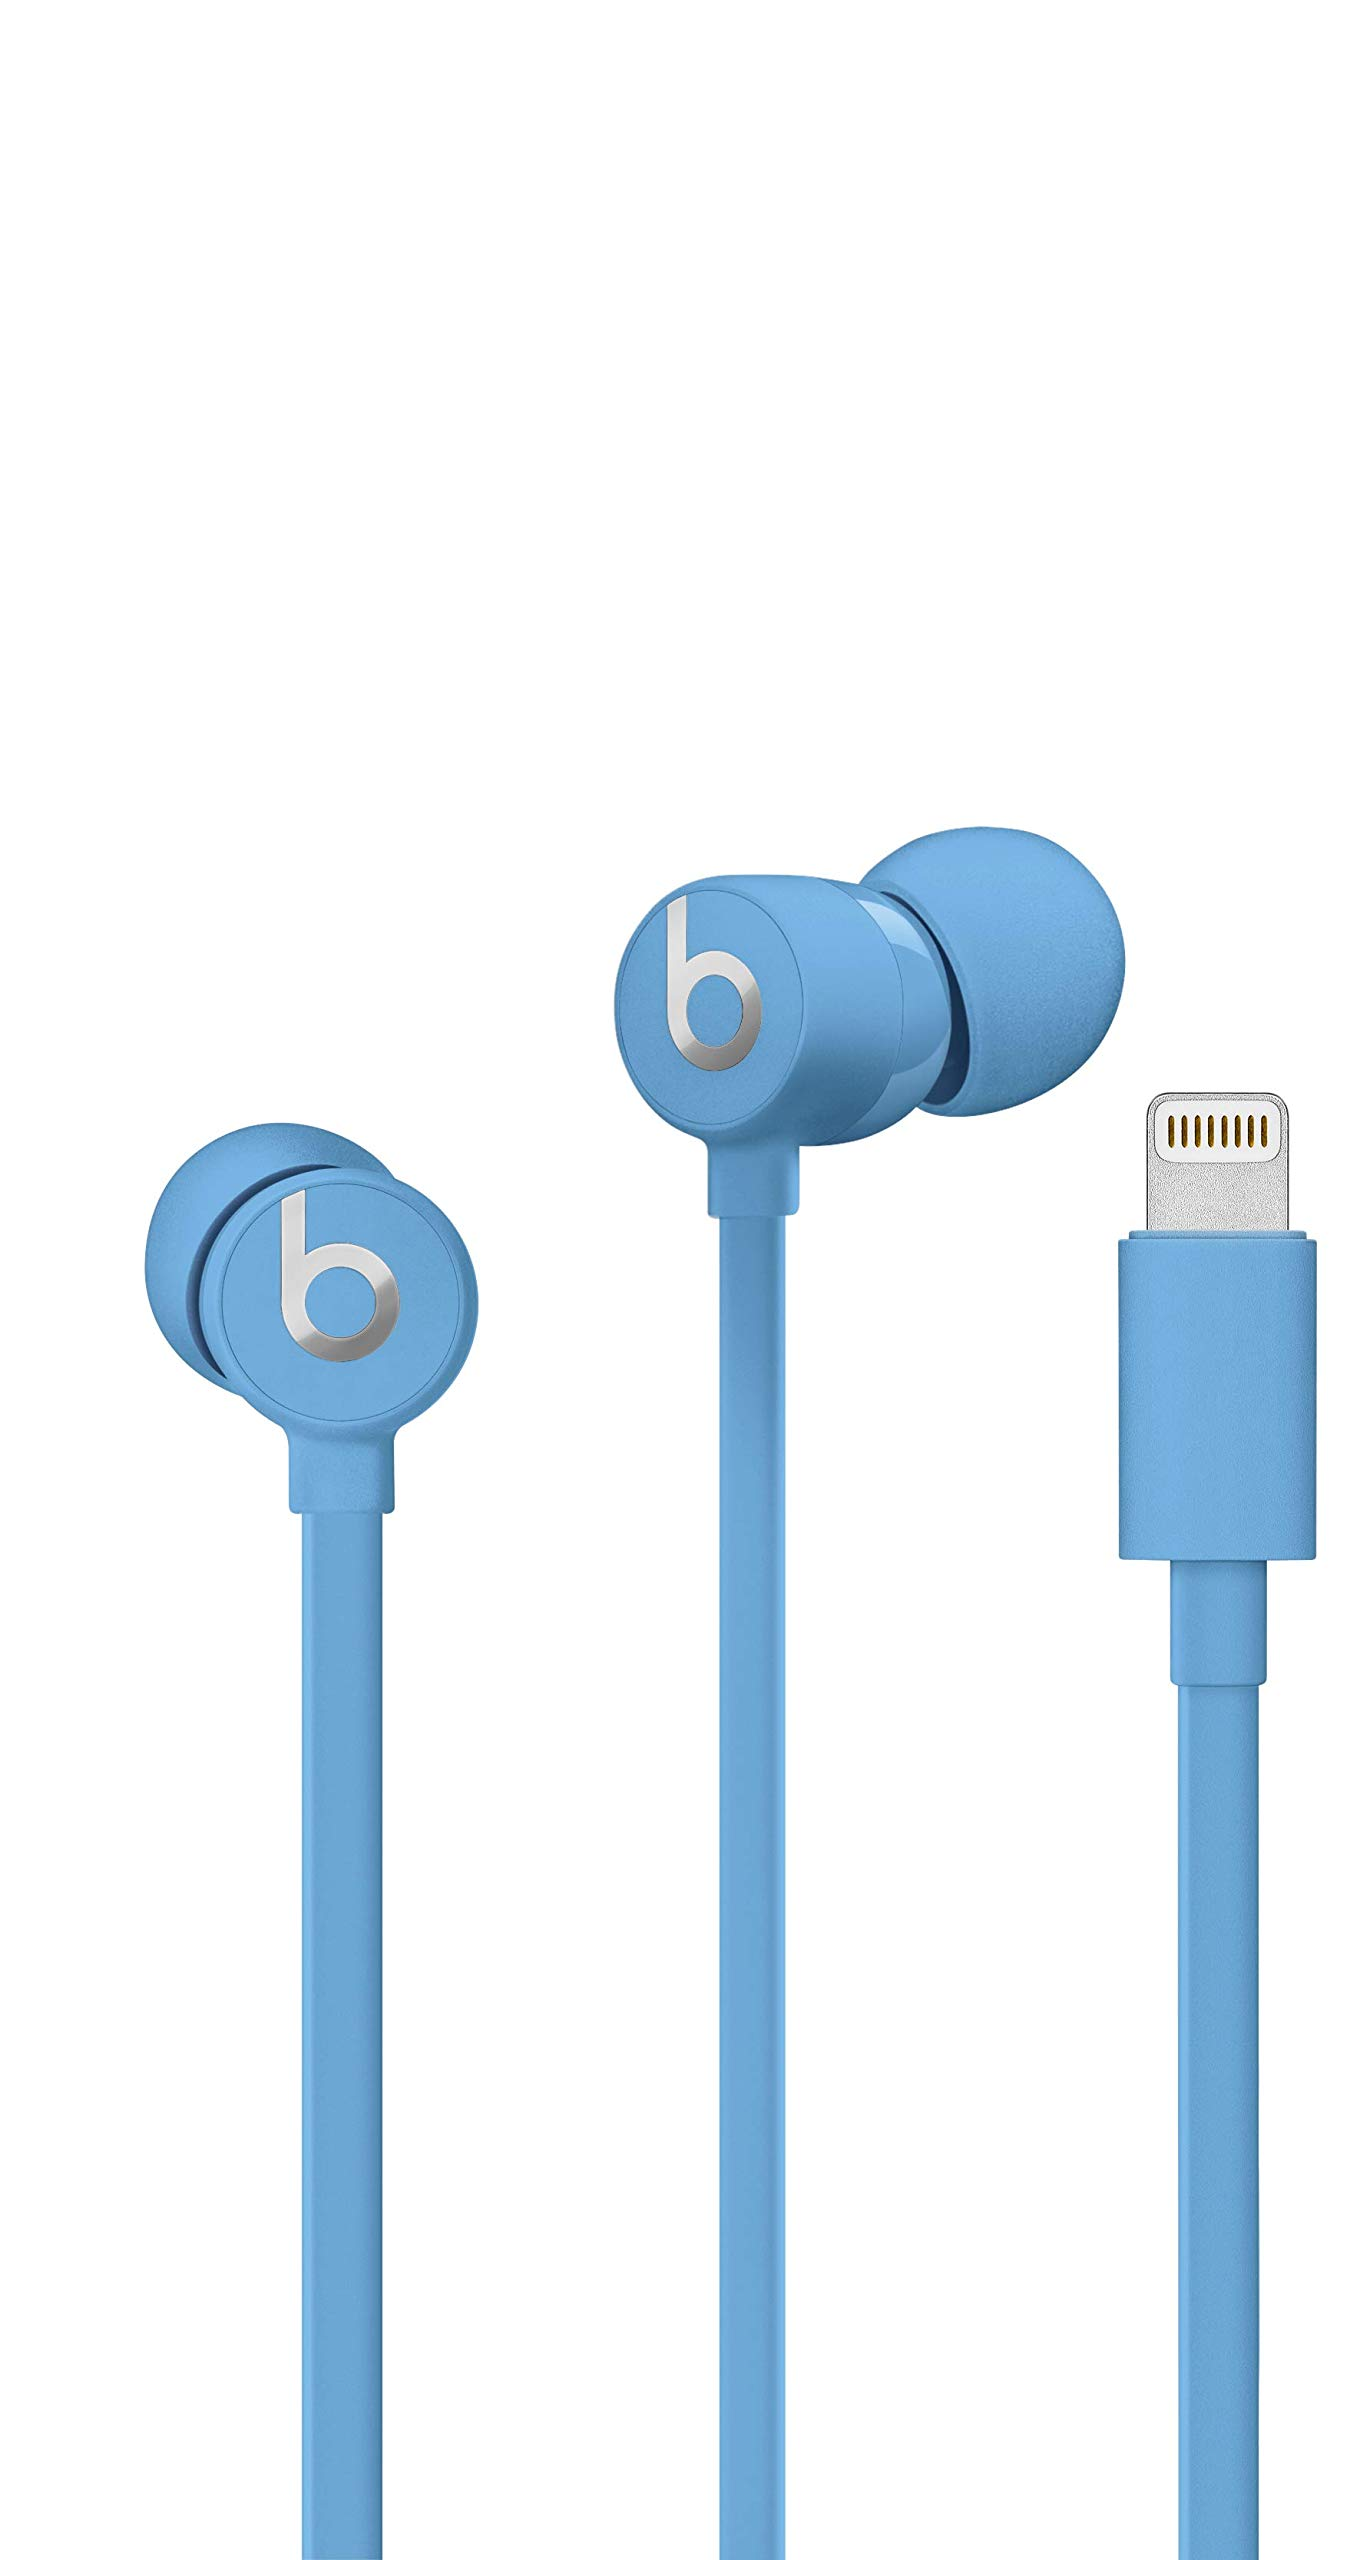 Beats urBeats3 Earphones with Lightning Connector - Blue by Beats